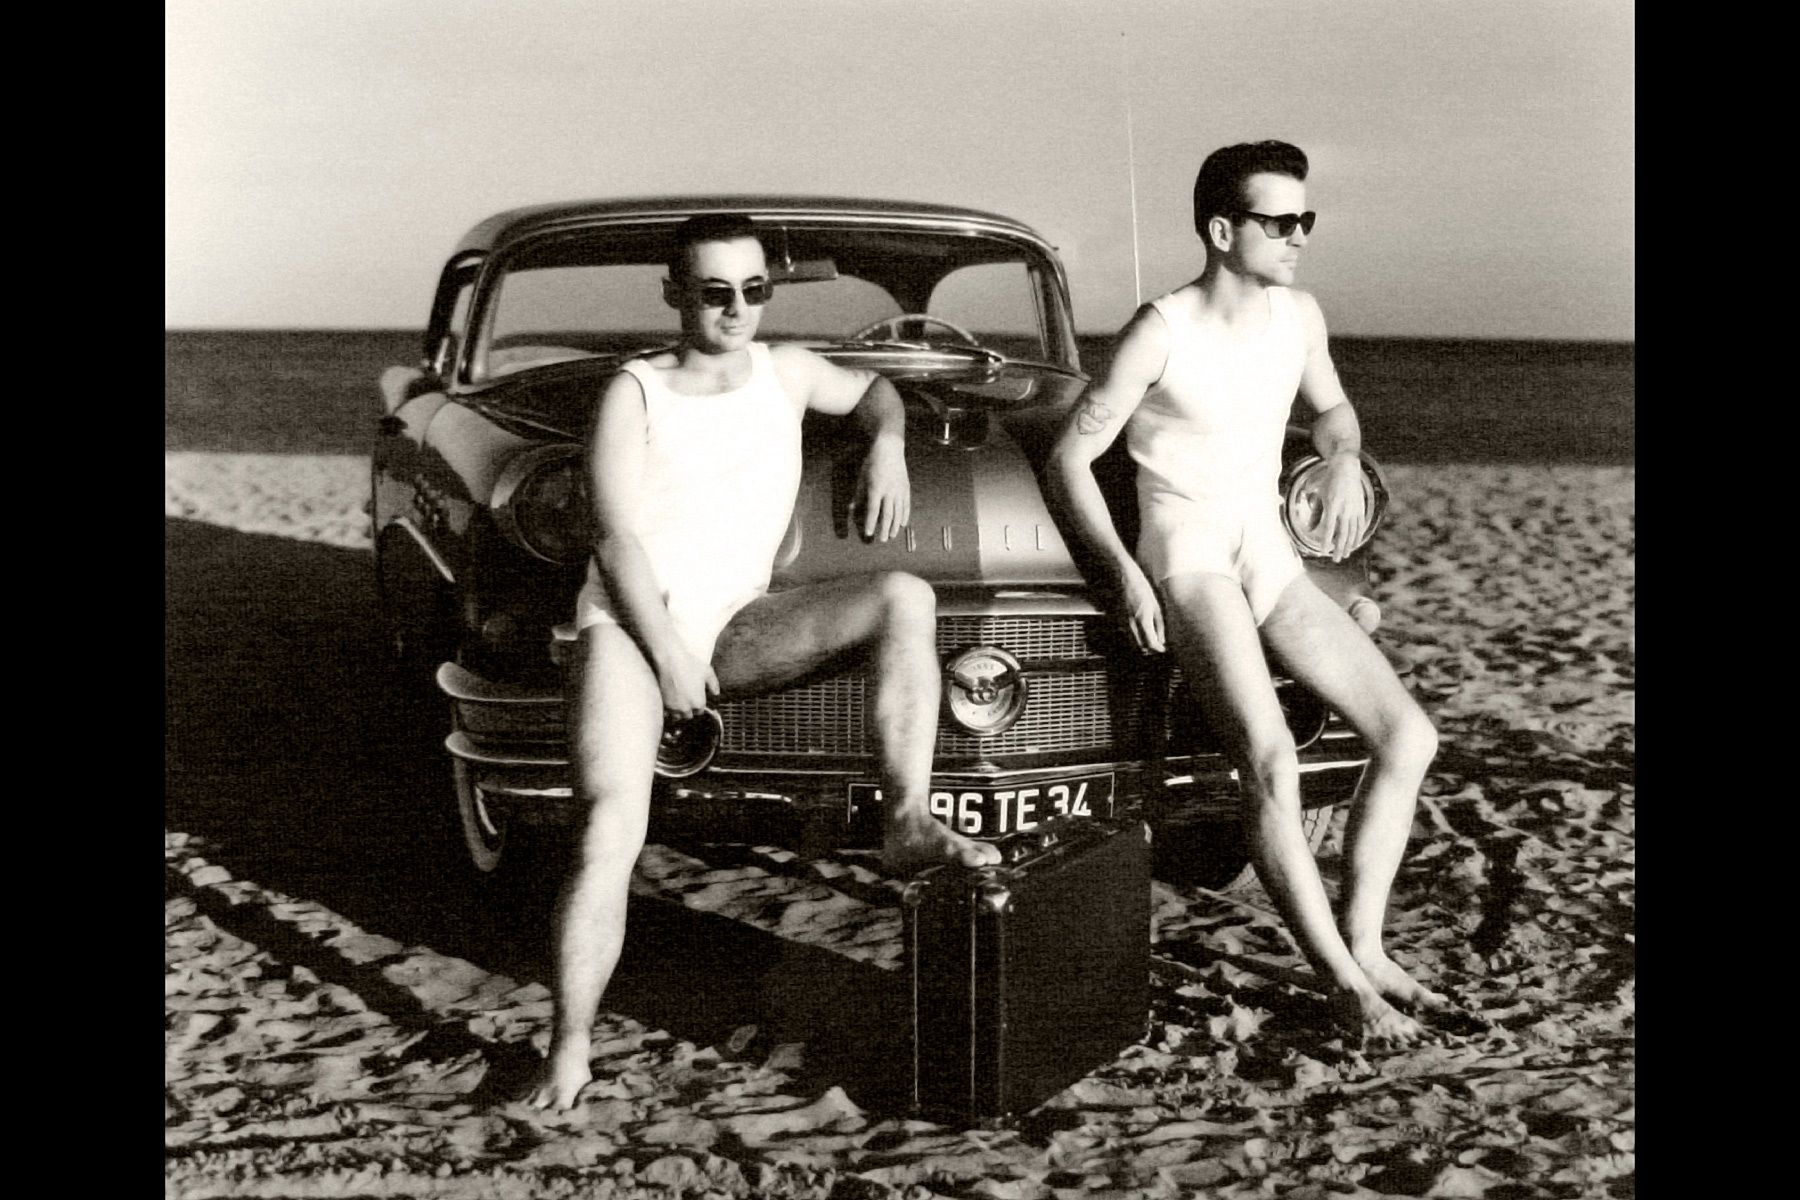 Bene and Christian on The Beach Buick 56 Serignan France